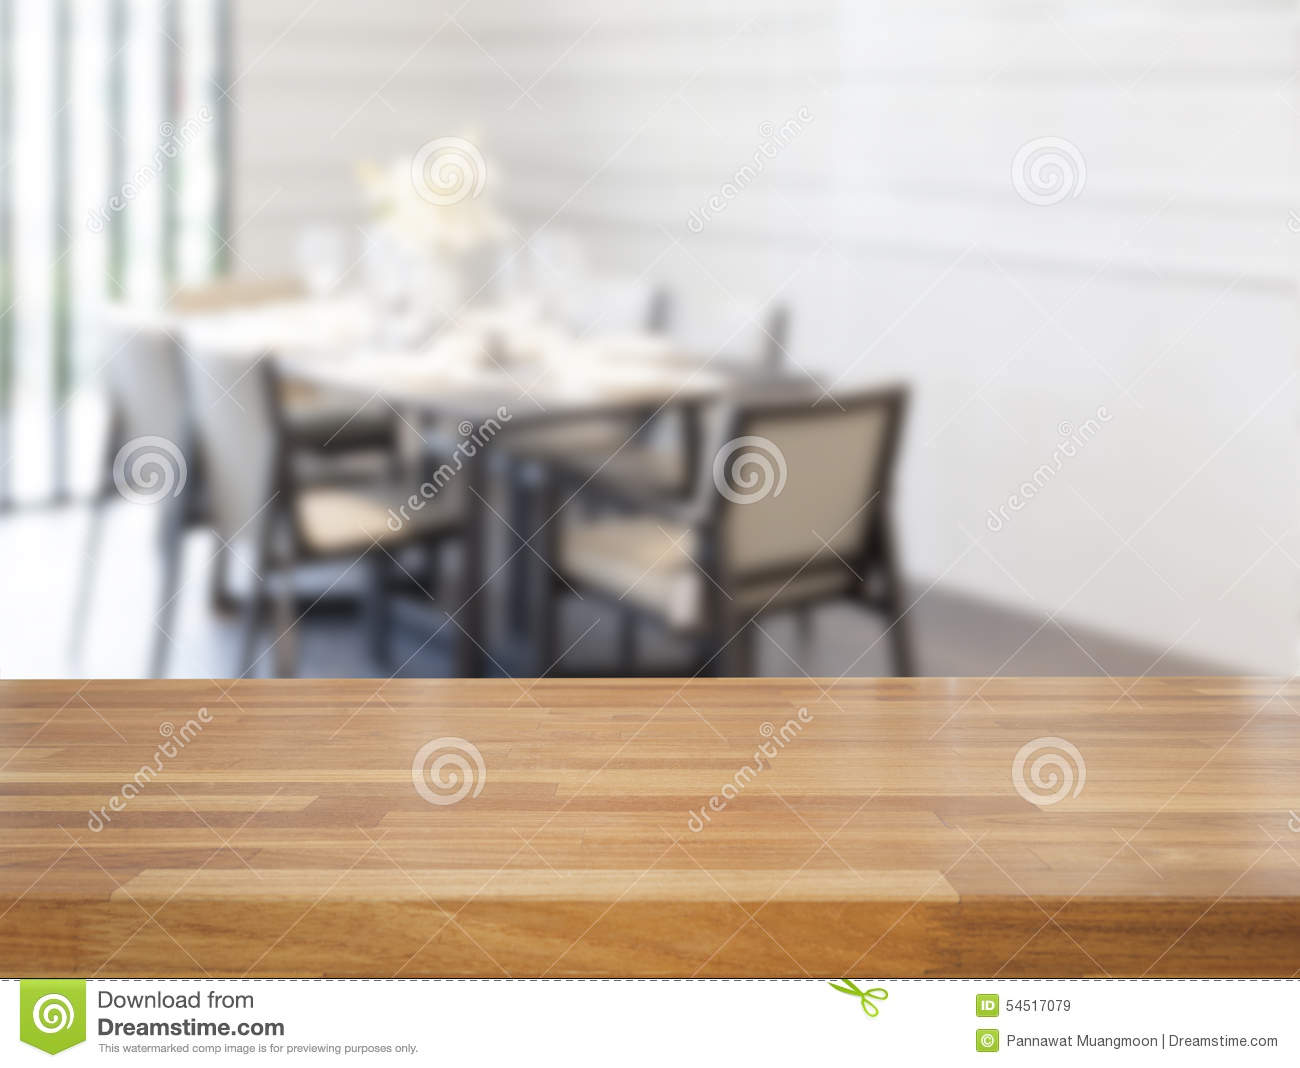 Dinner Table Background empty wooden table and dining room stock photo - image: 54517079